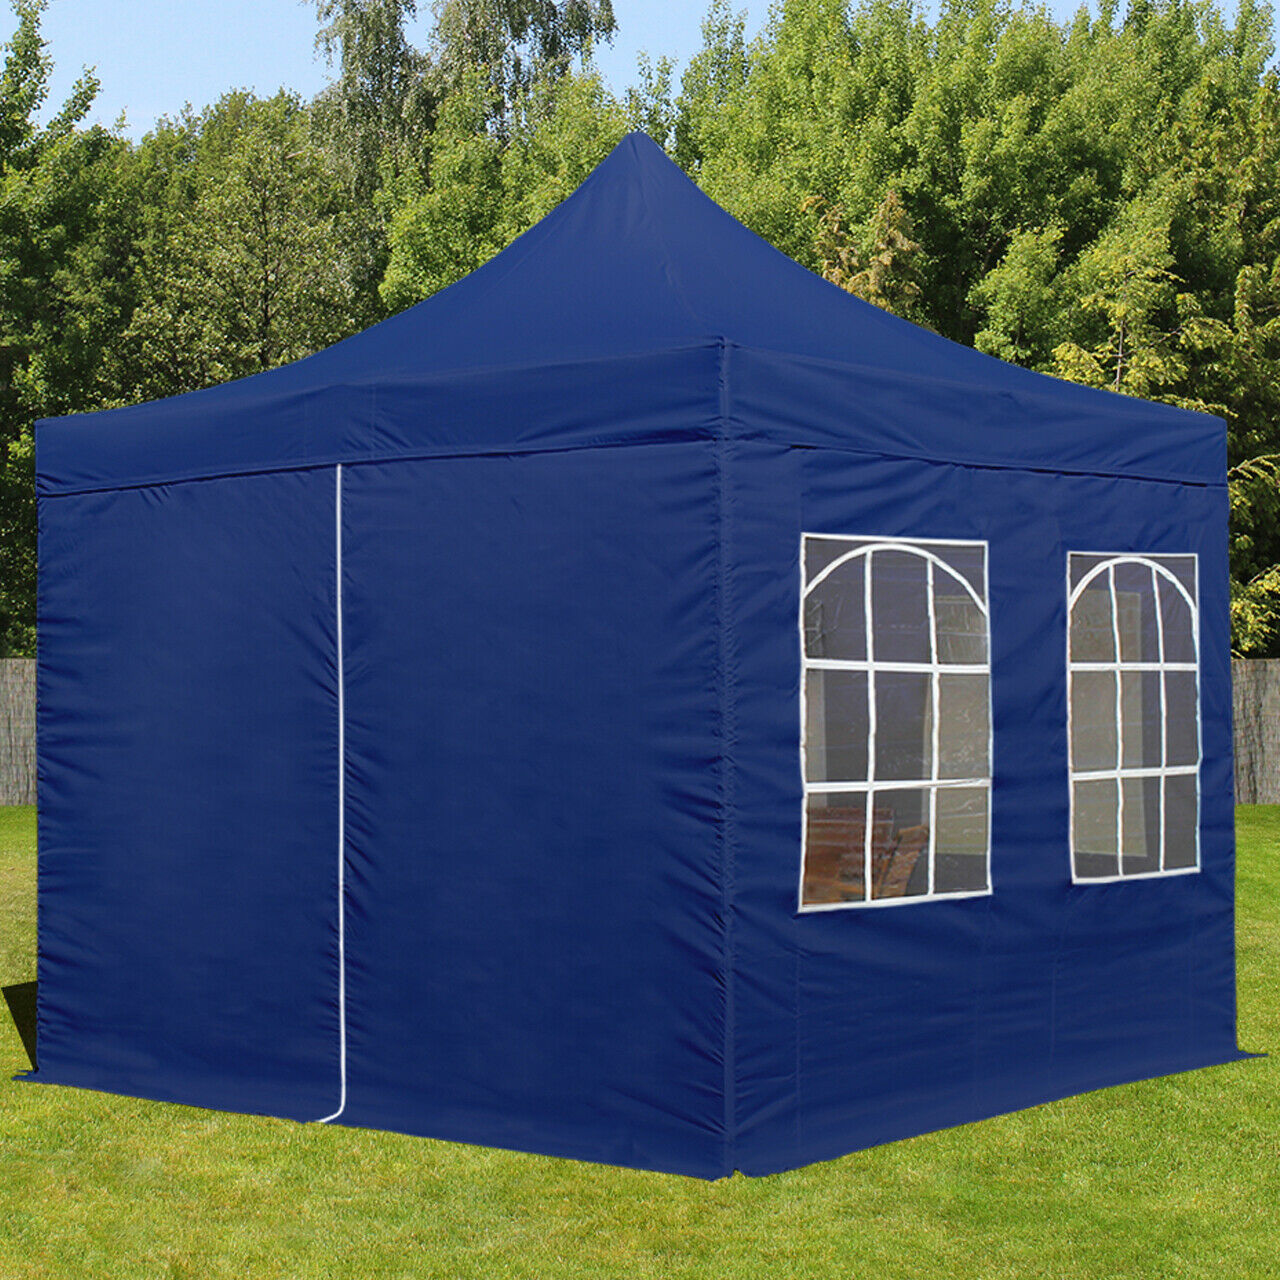 3x3m faltpavillon partyzelt mit seitenteilen pavillon gartenzelt in blau eur 229 99 picclick nl. Black Bedroom Furniture Sets. Home Design Ideas